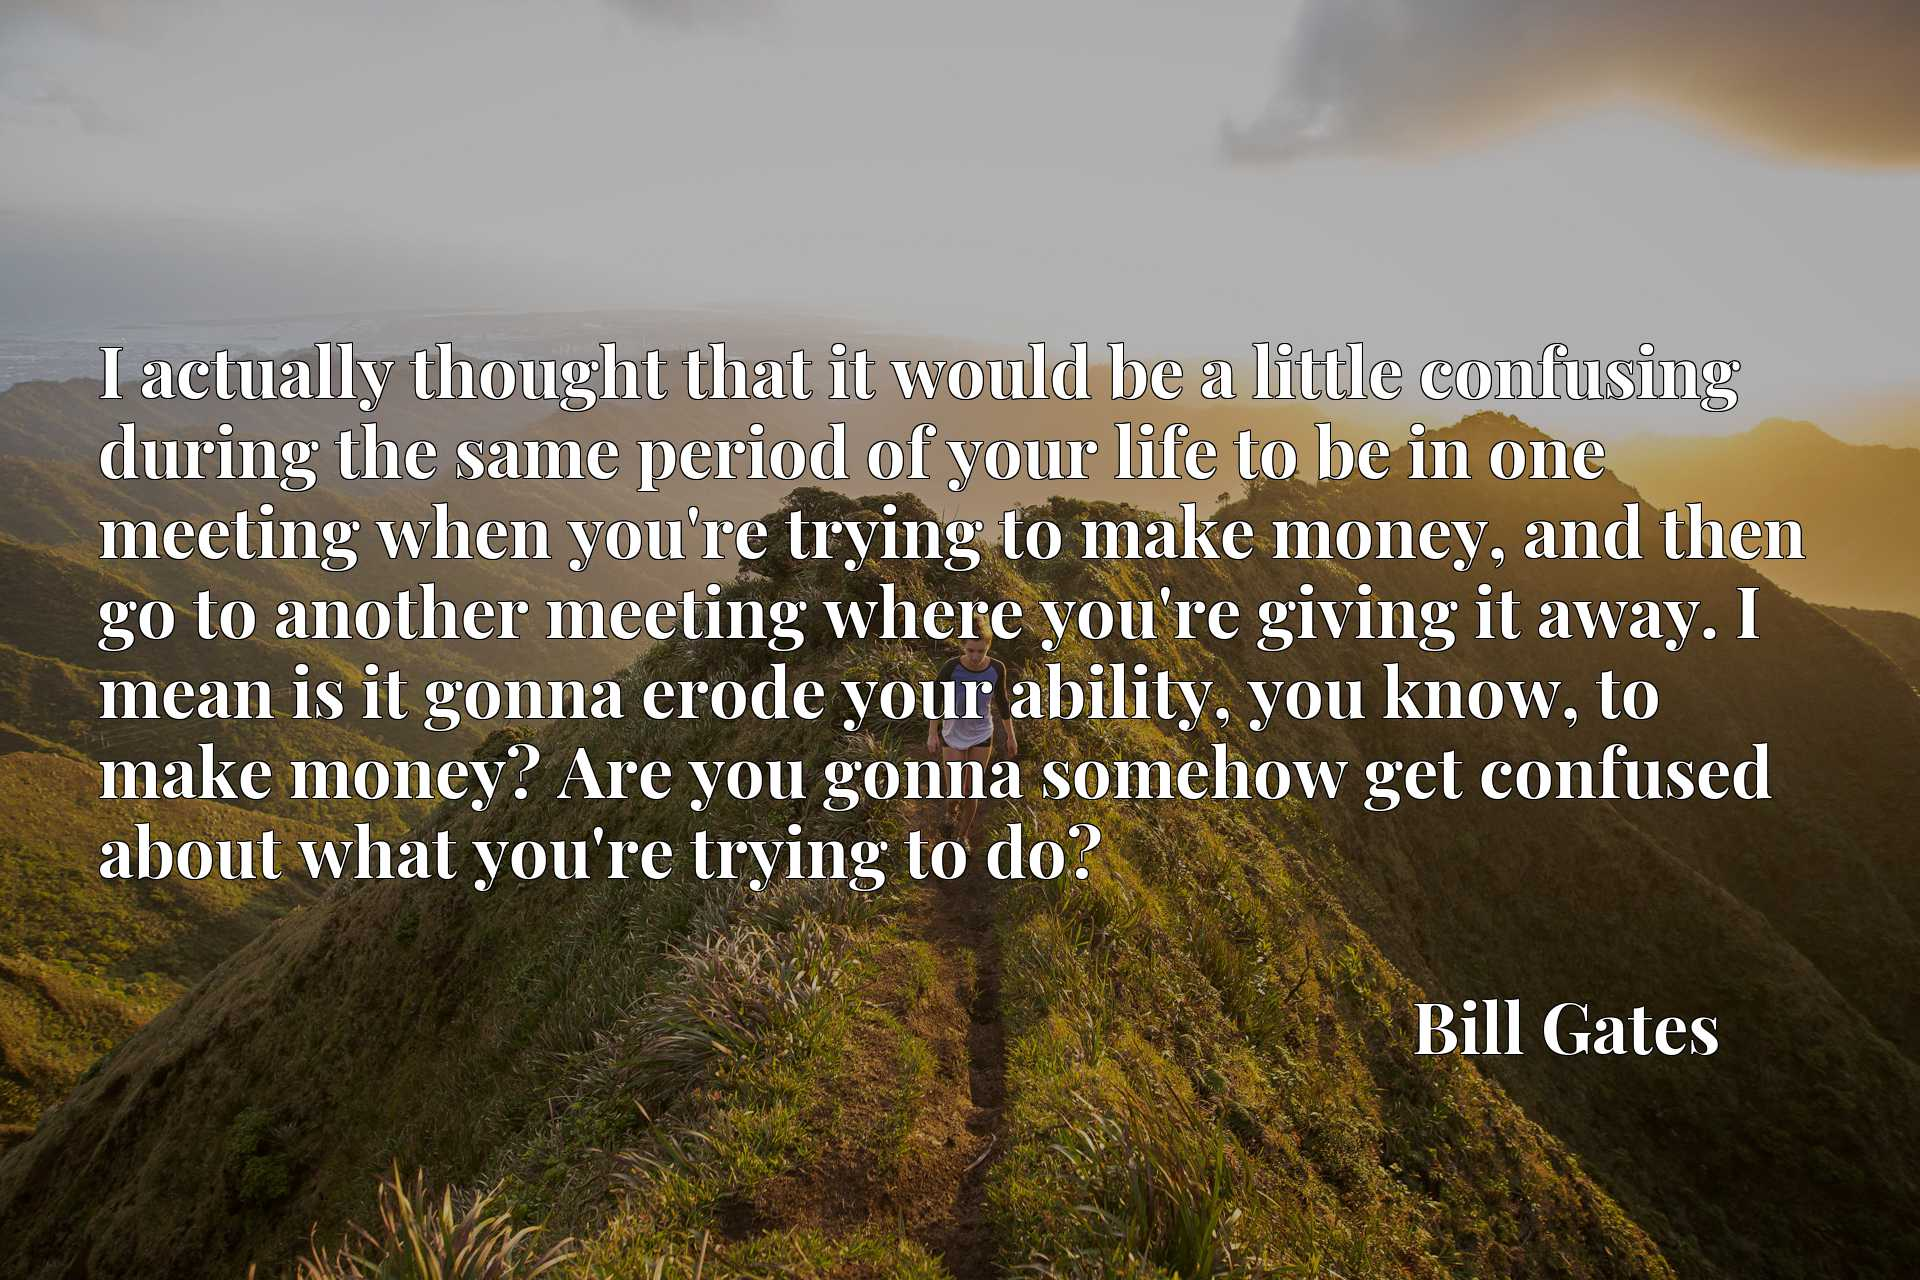 I actually thought that it would be a little confusing during the same period of your life to be in one meeting when you're trying to make money, and then go to another meeting where you're giving it away. I mean is it gonna erode your ability, you know, to make money? Are you gonna somehow get confused about what you're trying to do?